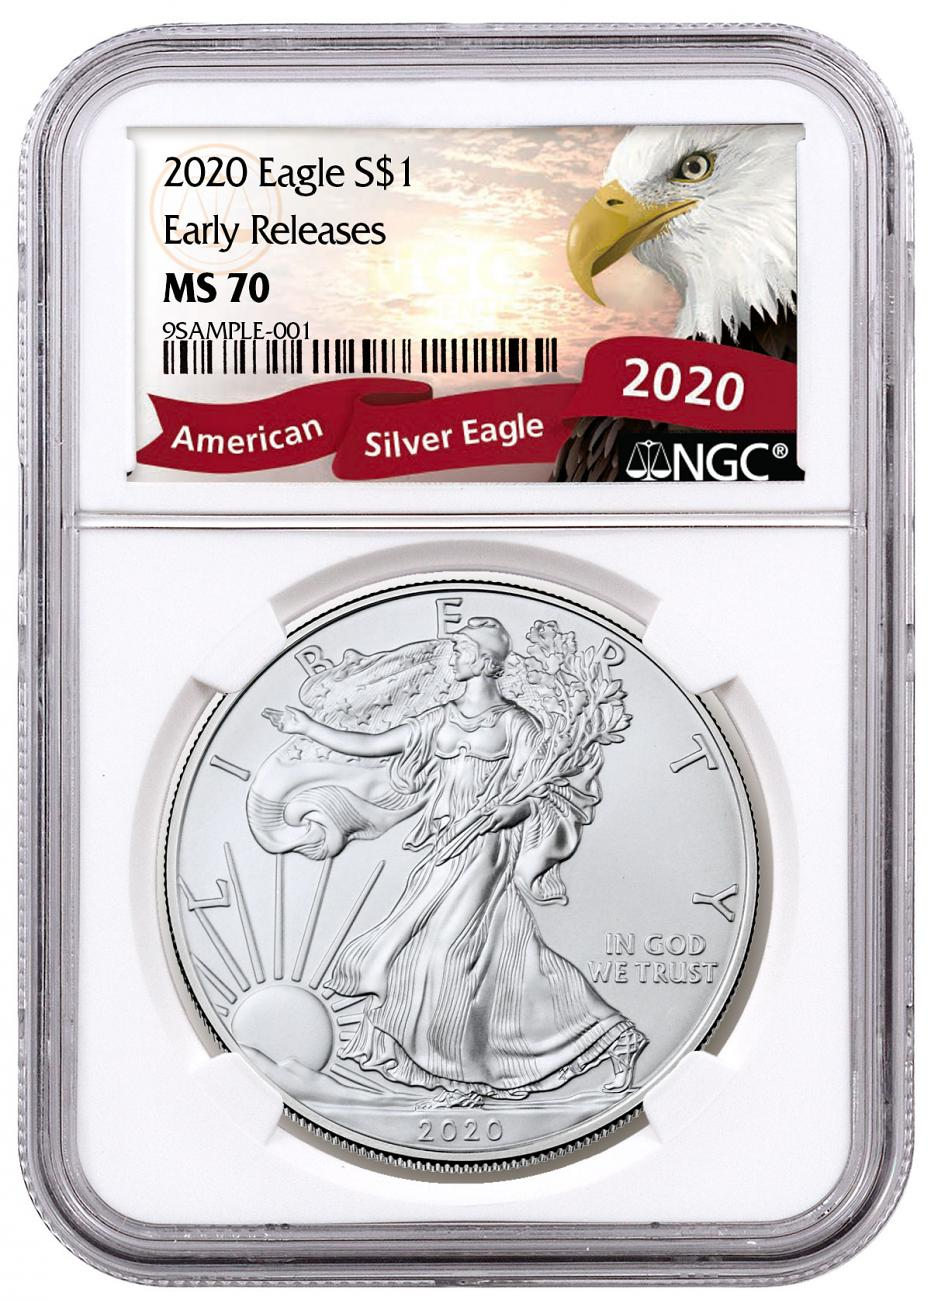 2020 1 oz American Silver Eagle $1 Coin NGC MS70 ER Exclusive Eagle Label